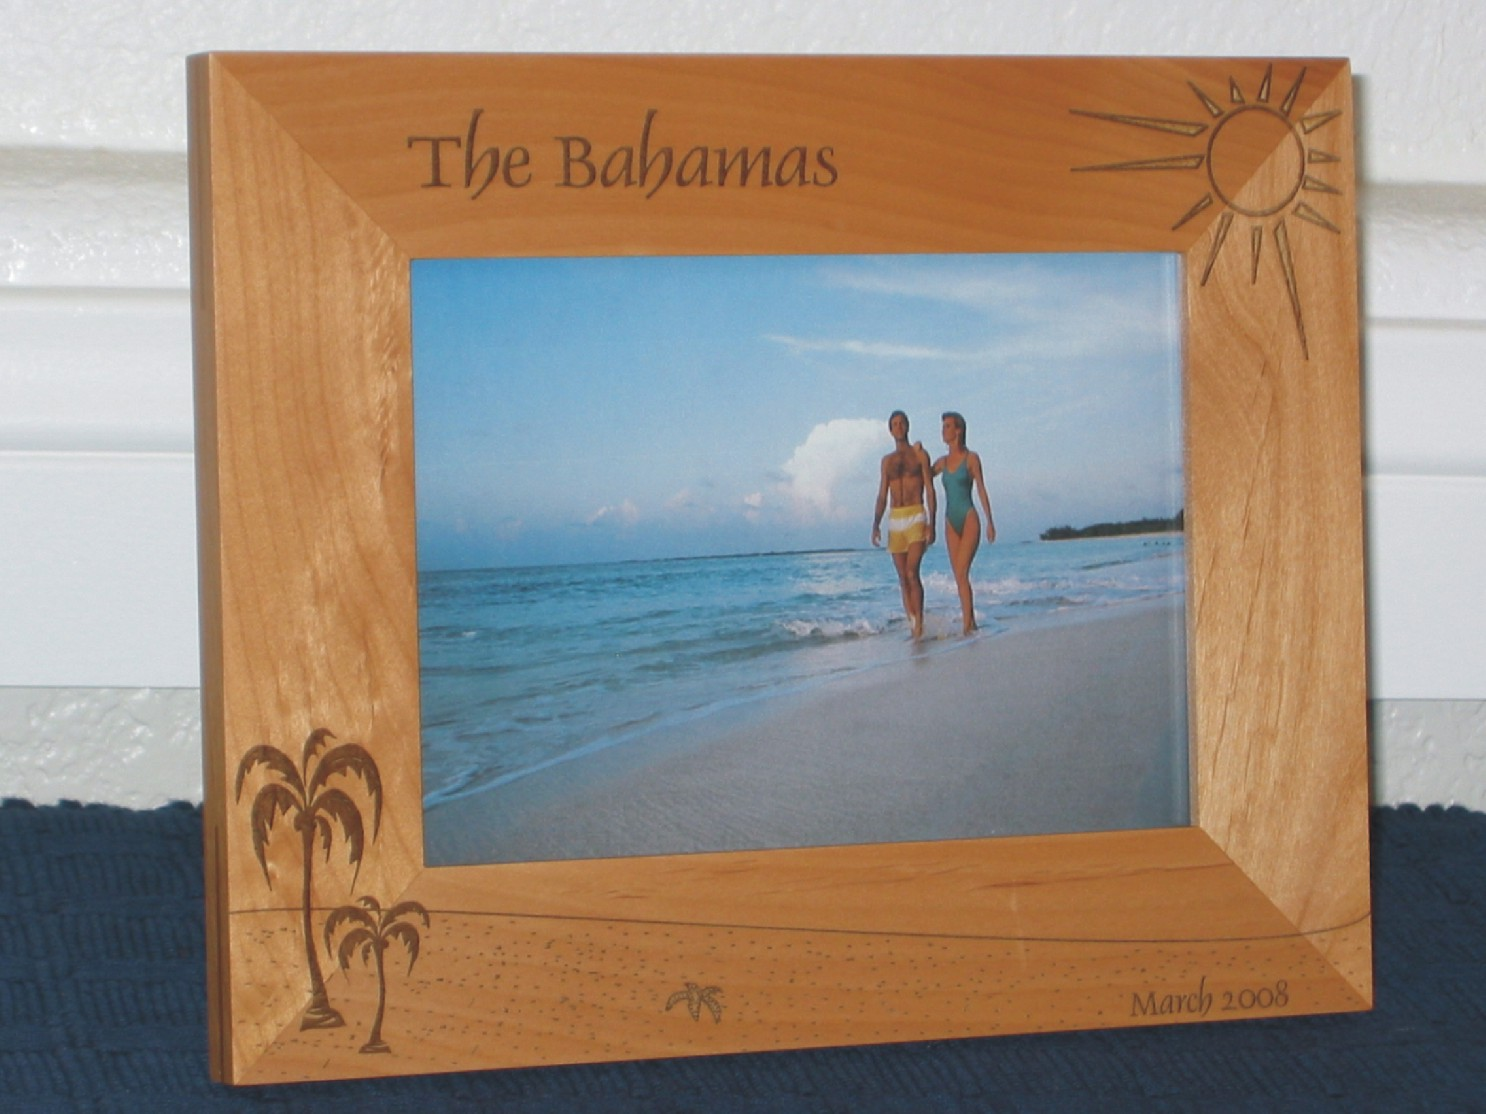 Caribbean island picture frames personalized island picture frames bahamas picture frame personalized souvenir frame laser engraved beach theme with palms jeuxipadfo Choice Image